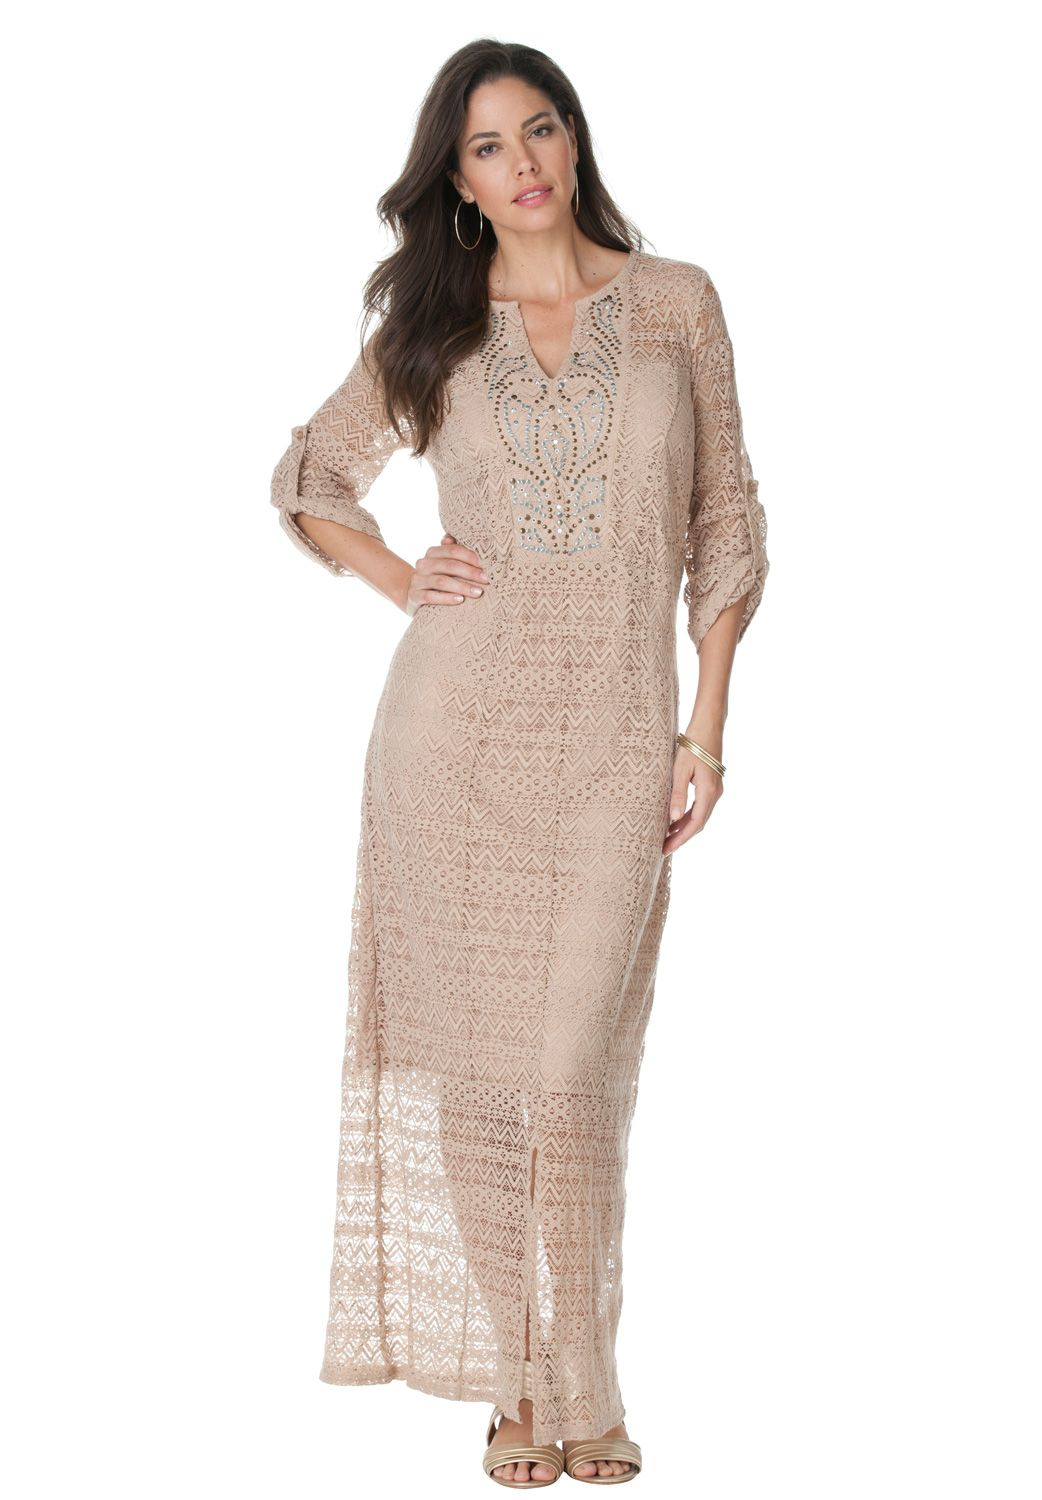 A beautiful plus size maxi dress designed to fit you flawlessly